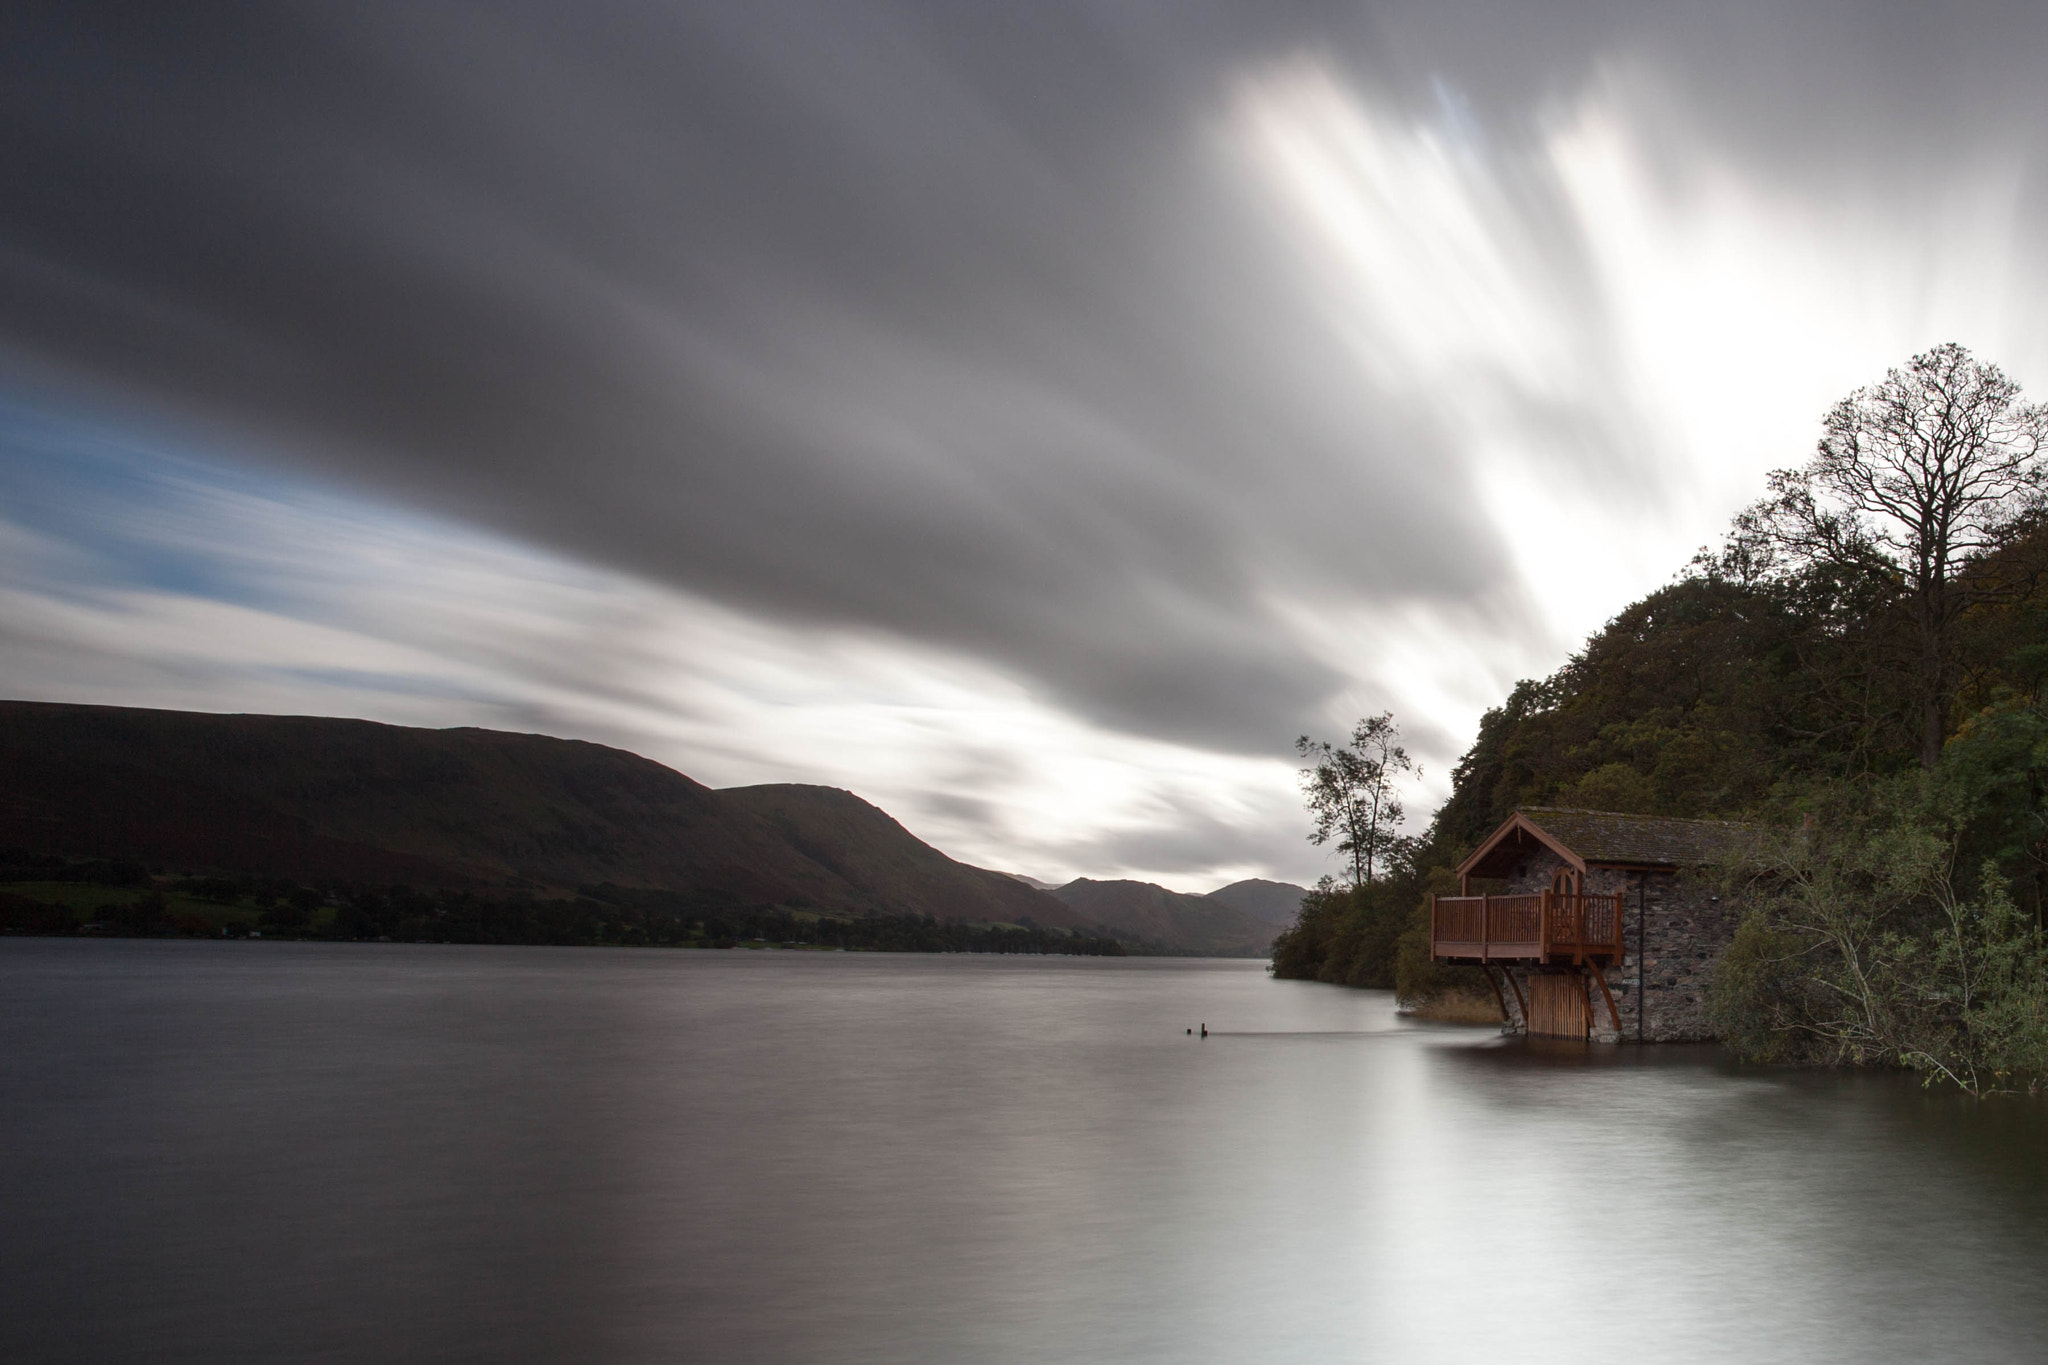 Photograph The Boat House by Carl Mickleburgh on 500px